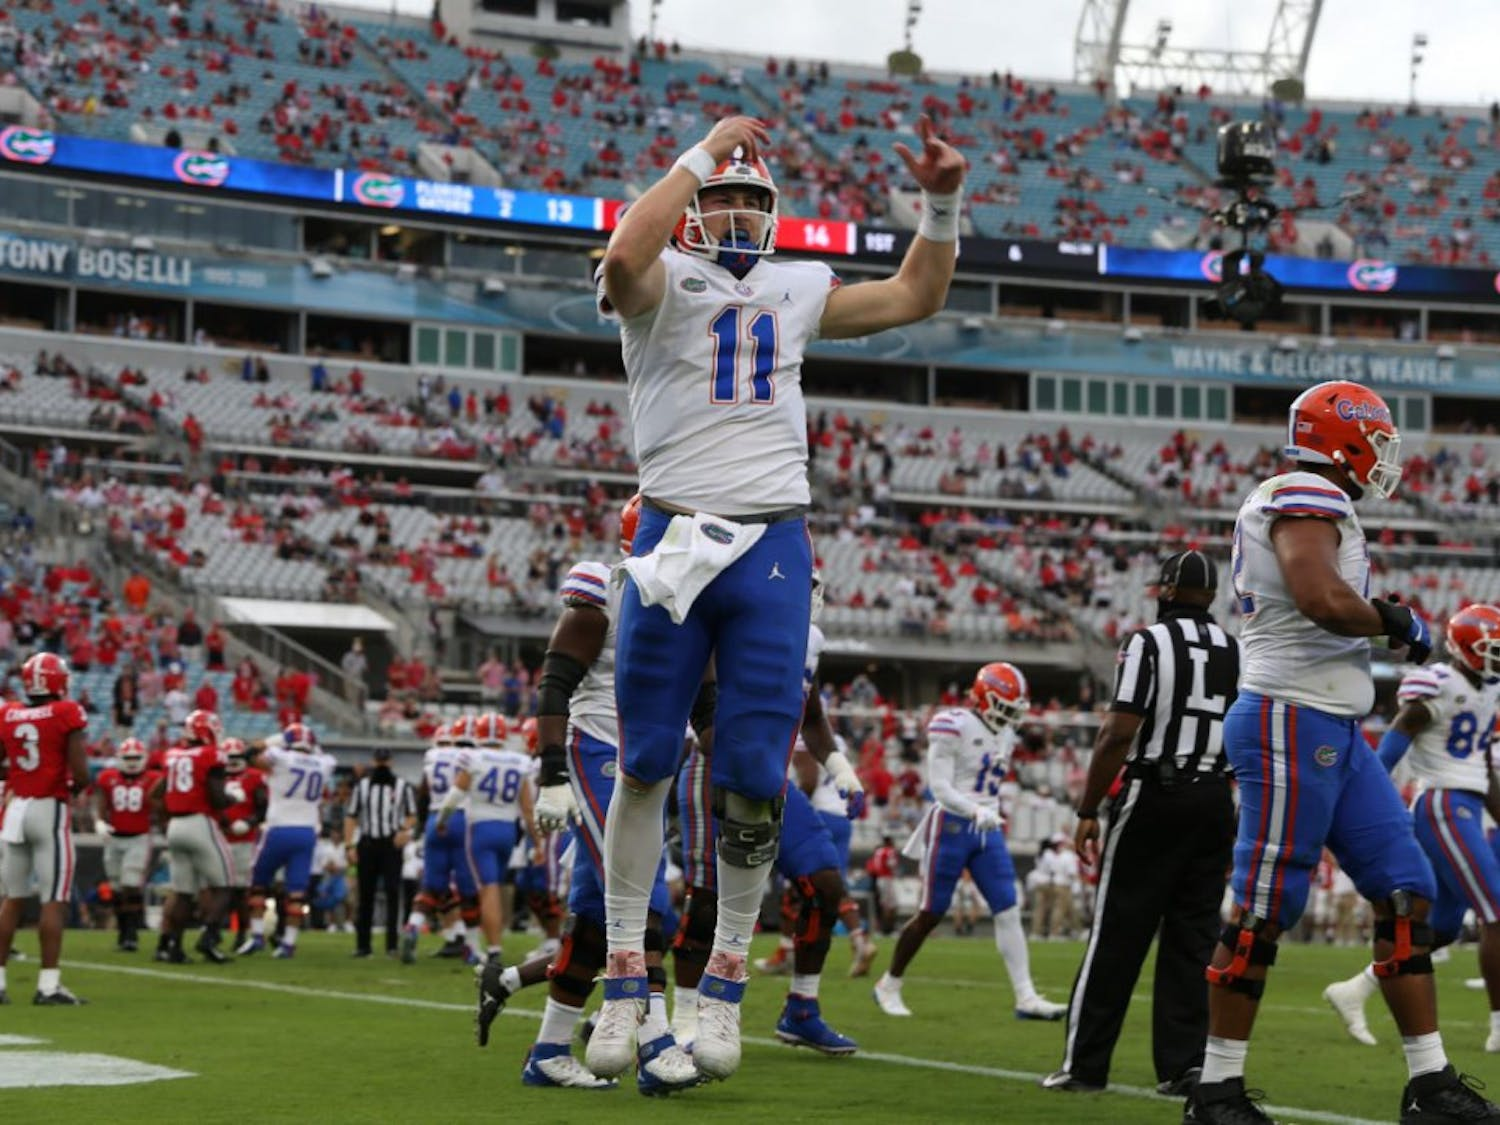 Florida quarterback Kyle Trask hypes up the crowd at TIAA Bank Stadium in Jacksonville, Florida, Saturday. The Gators defeated the Bulldogs in the most recent rivalry game on Nov. 7.